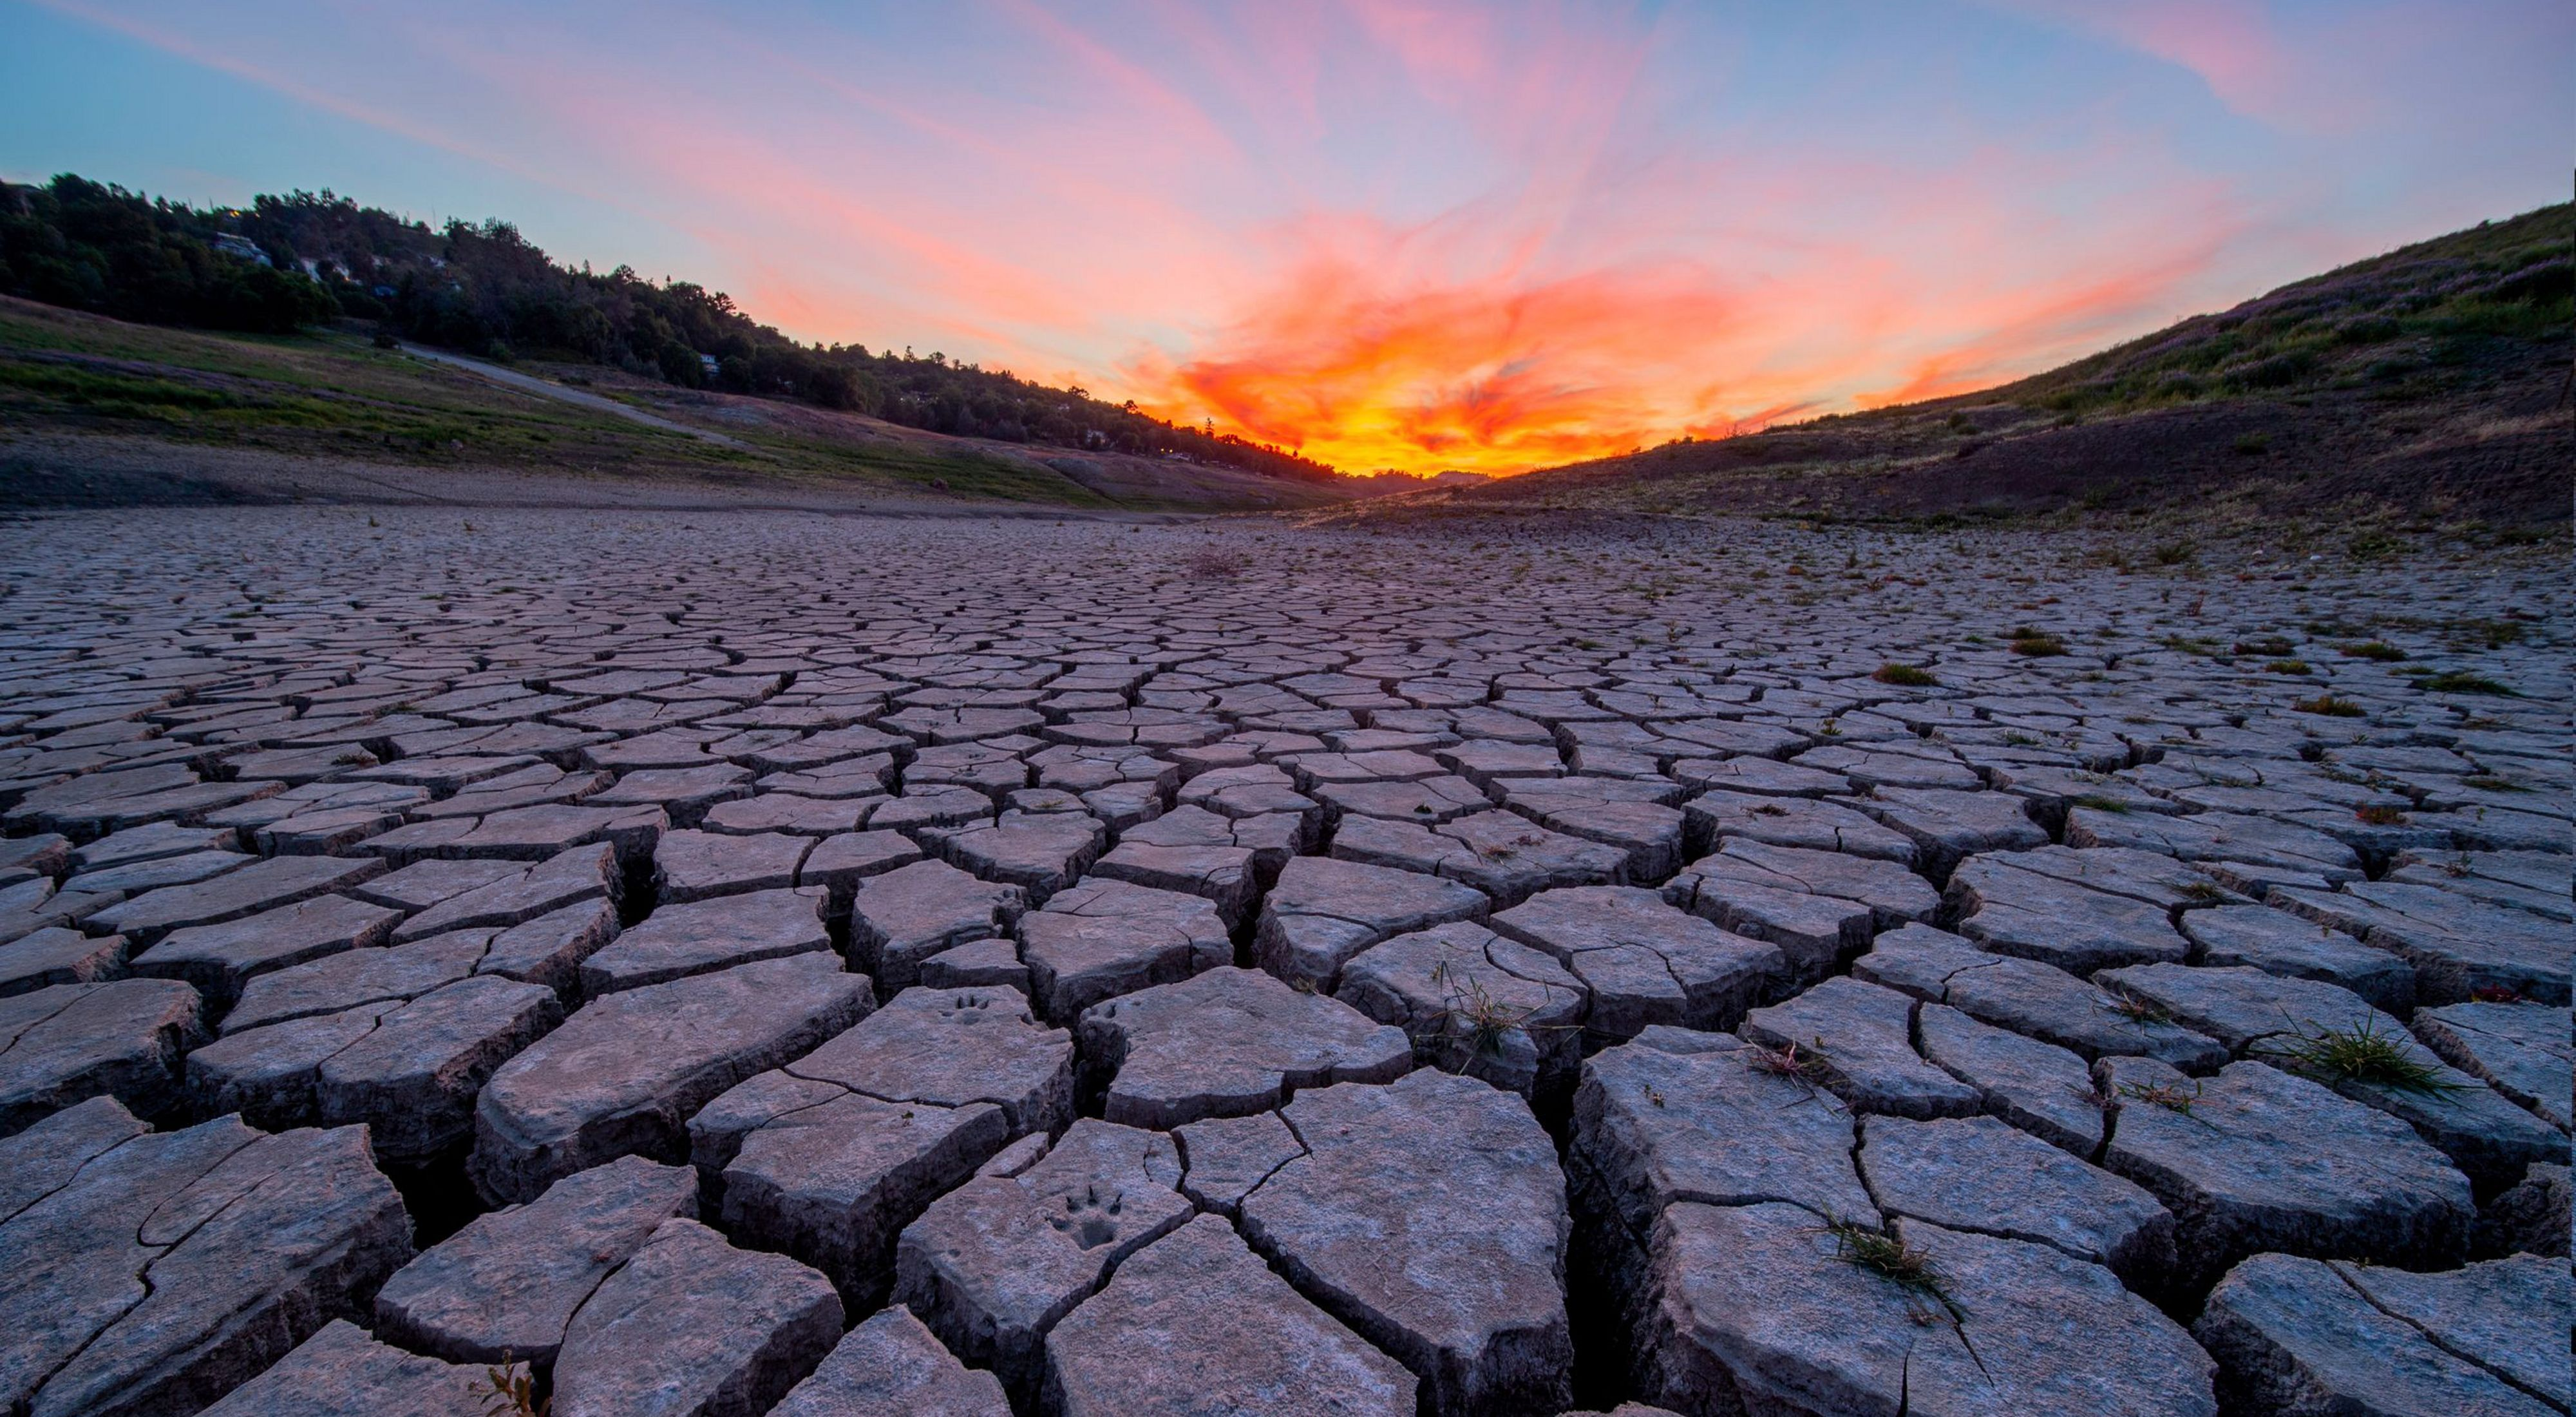 Photo of an orange sunset across a parched, cracked riverbed.